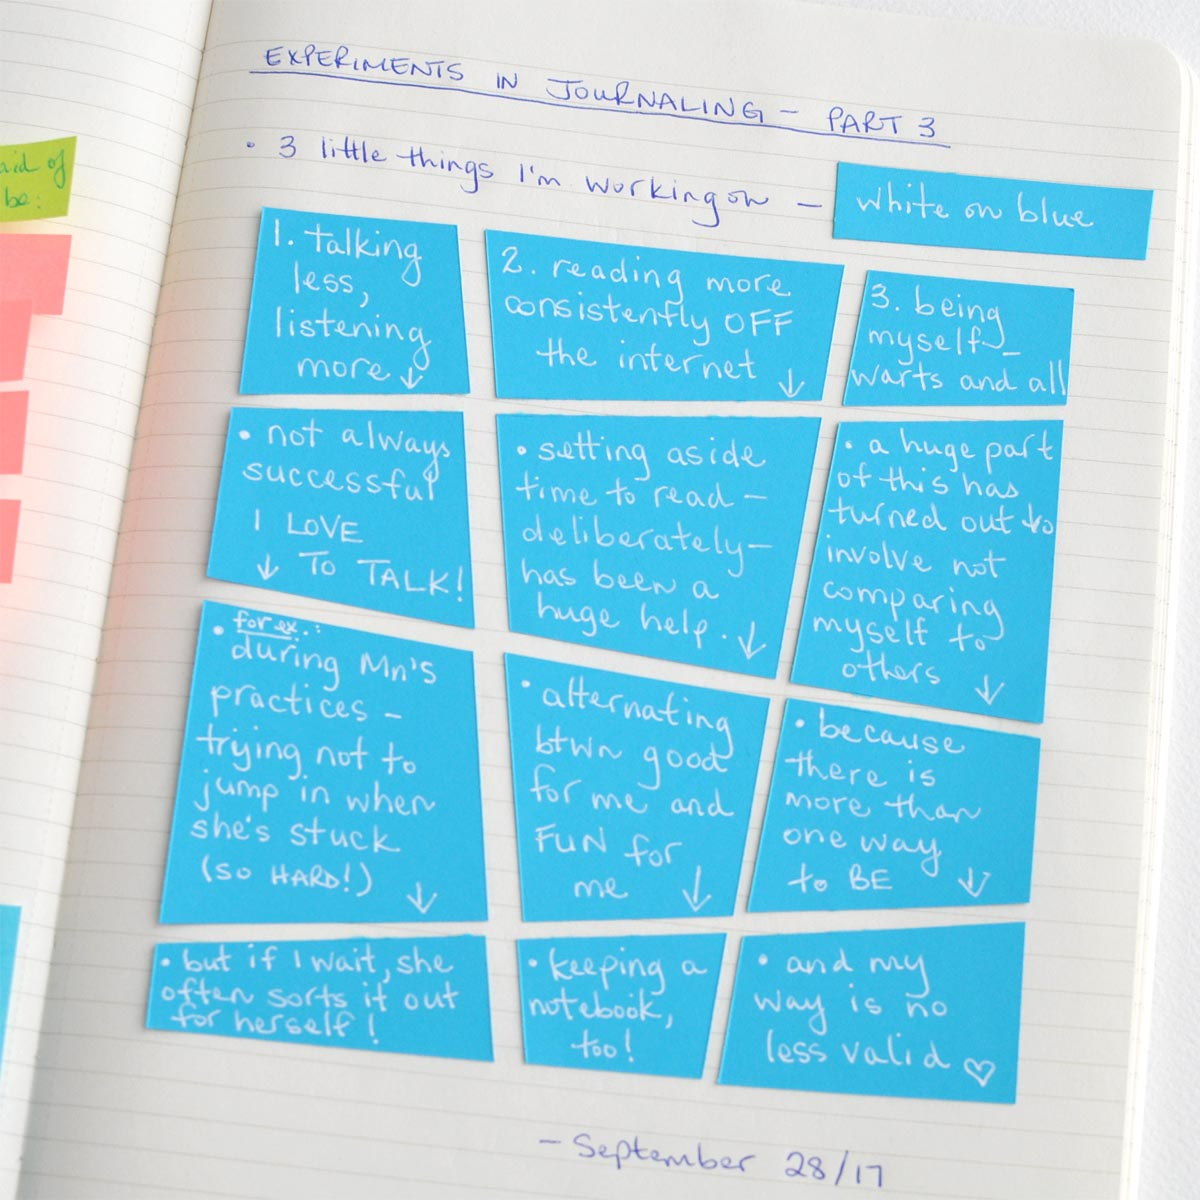 Experiments-in-Journaling-Part-3.jpg